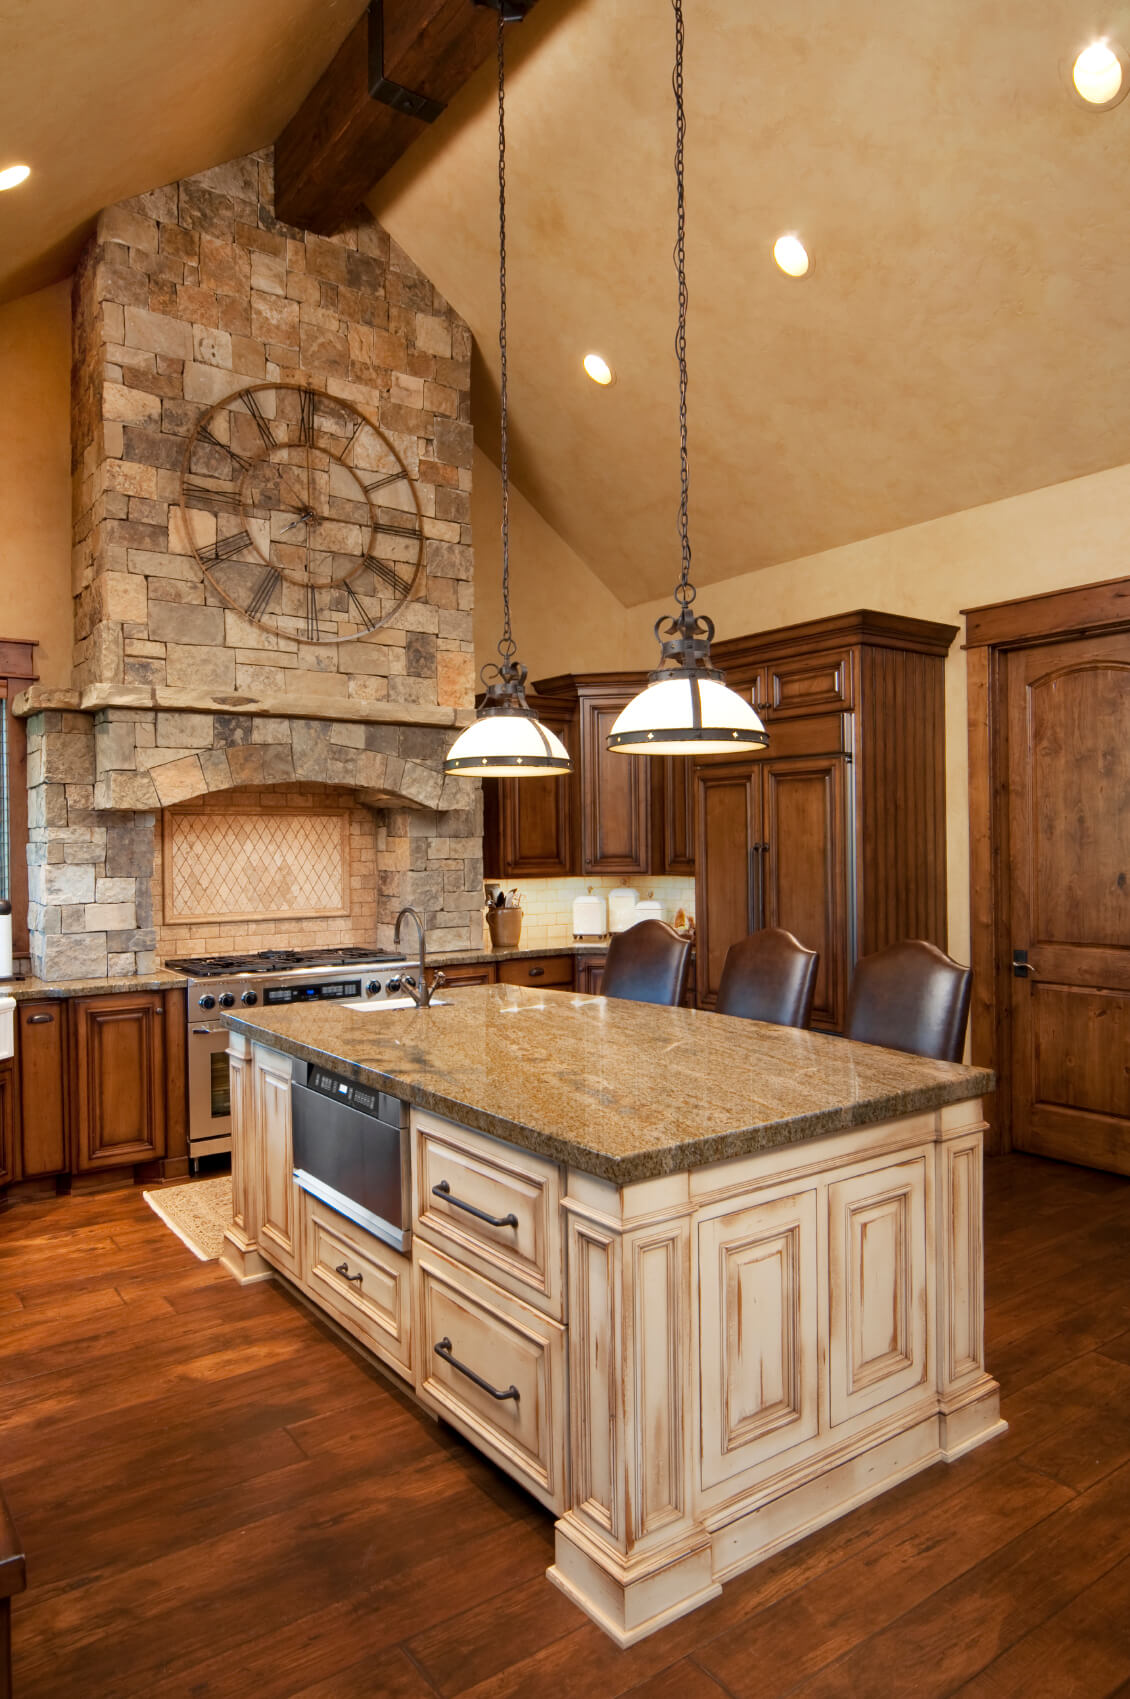 Rich, Natural Wood Kitchen Holds This Large, Contrasting Light Wood Island  At Center,